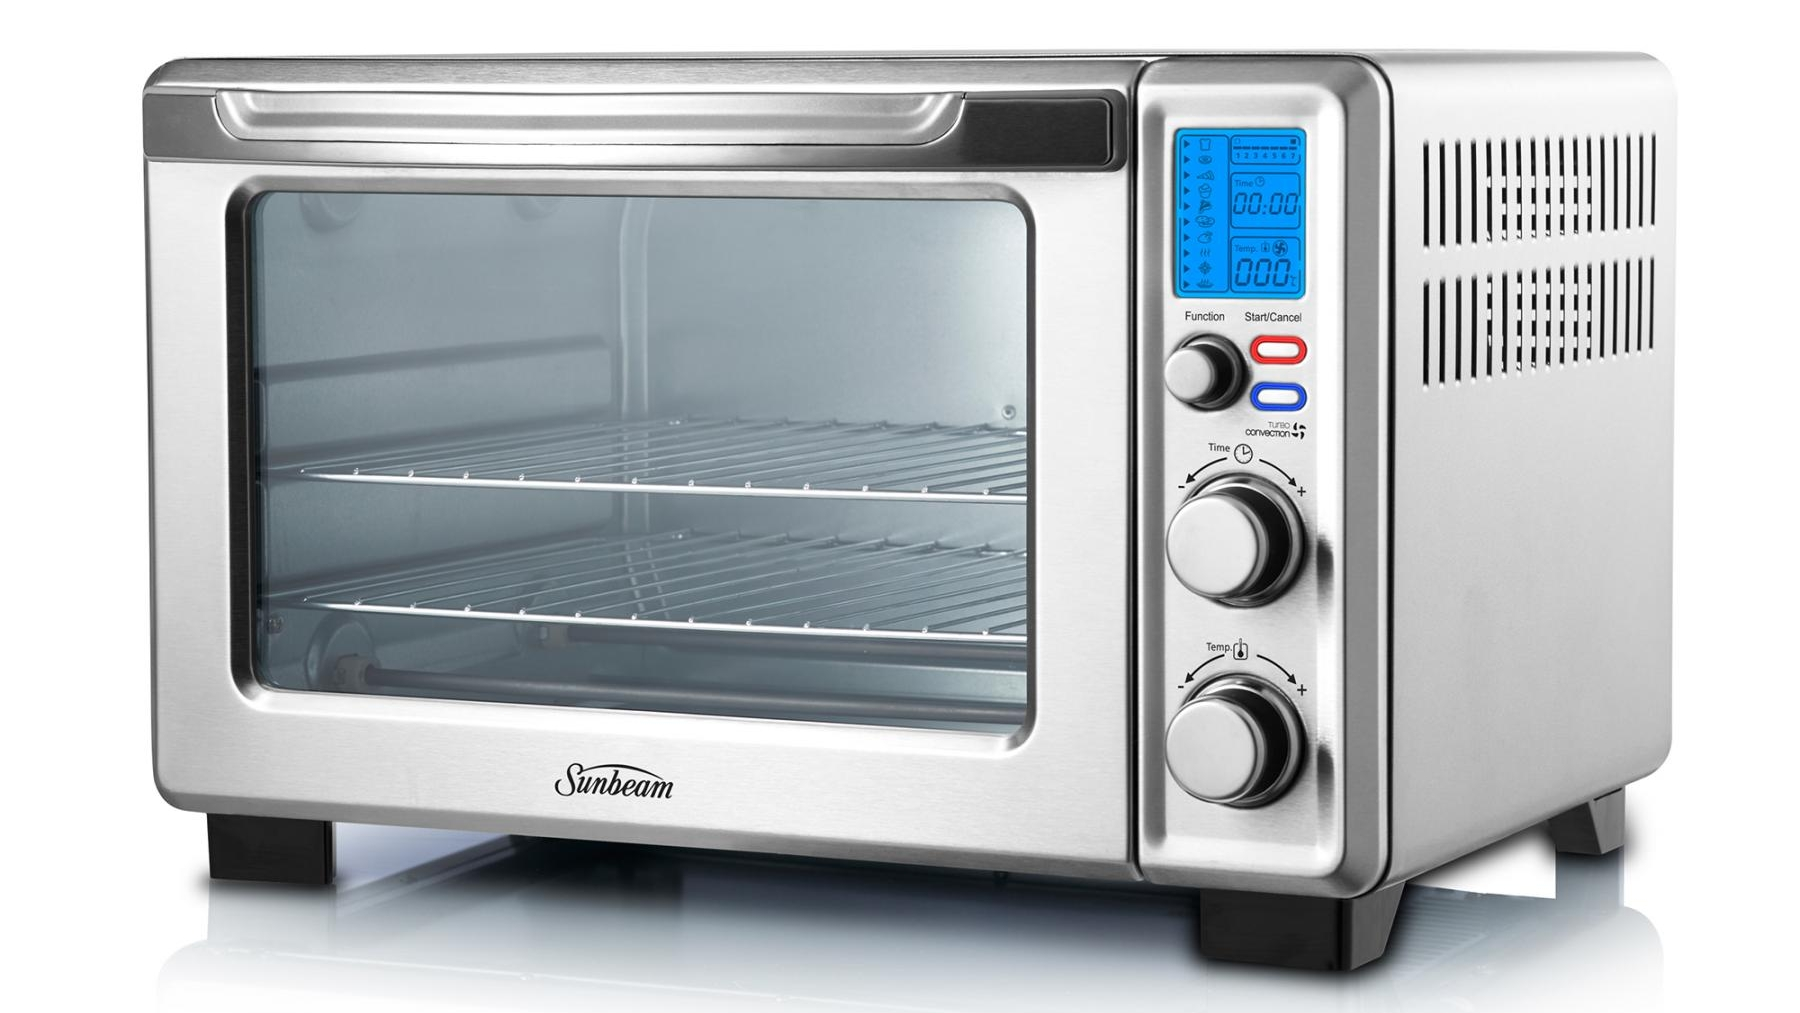 Buy Sunbeam BT7100 Pizza Bake & Grill Compact Oven | Harvey Norman AU